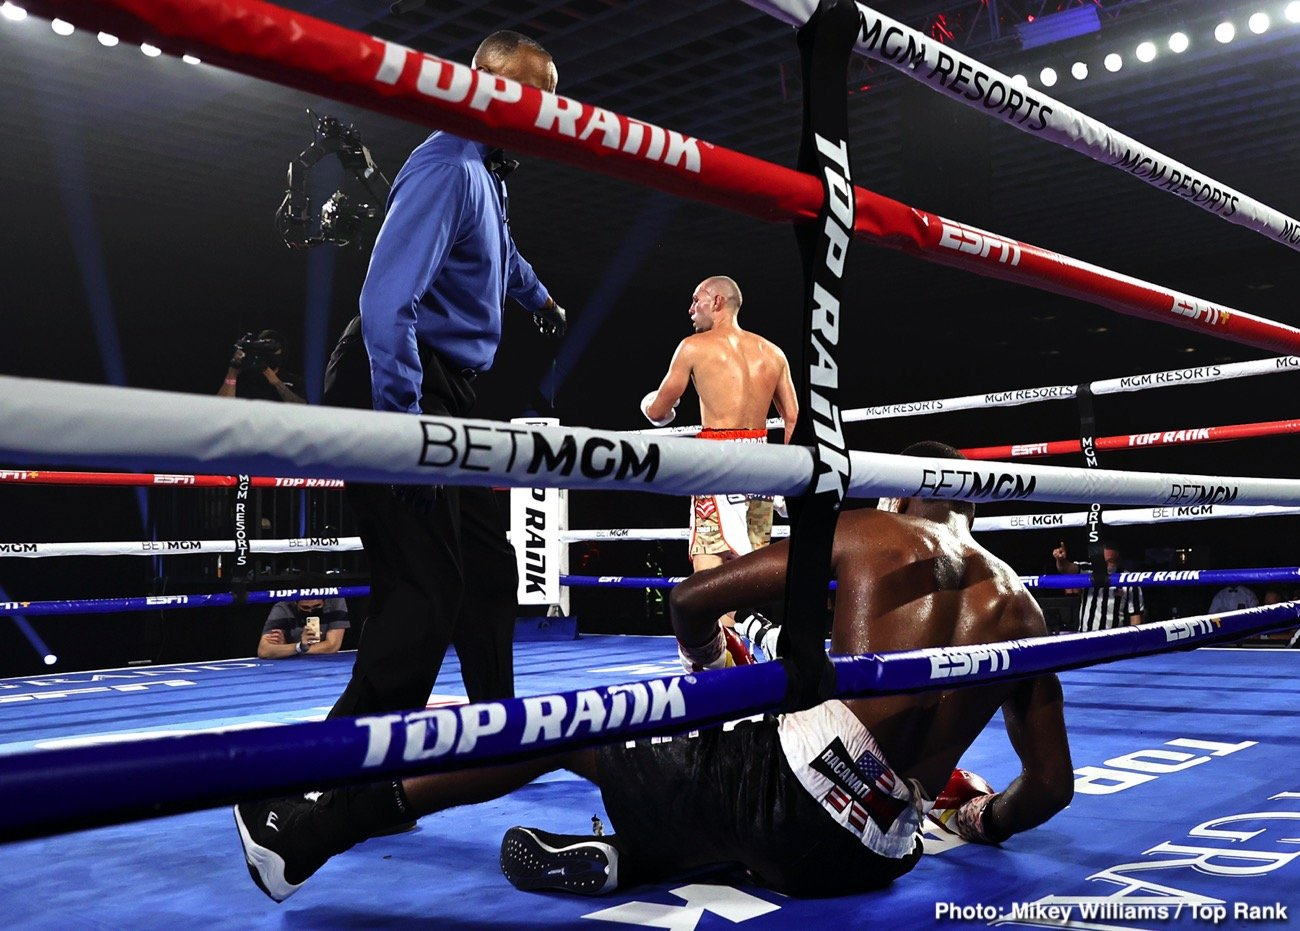 Robeisy Ramirez - Former two-weight world champion Jose Pedraza's quest for a title in a third weight class is alive and well. Pedraza, from Cidra, Puerto Rico, toppled Mikkel LesPierre via unanimous decision (100-88 and 99-89 2x) Thursday night in a junior welterweight bout.